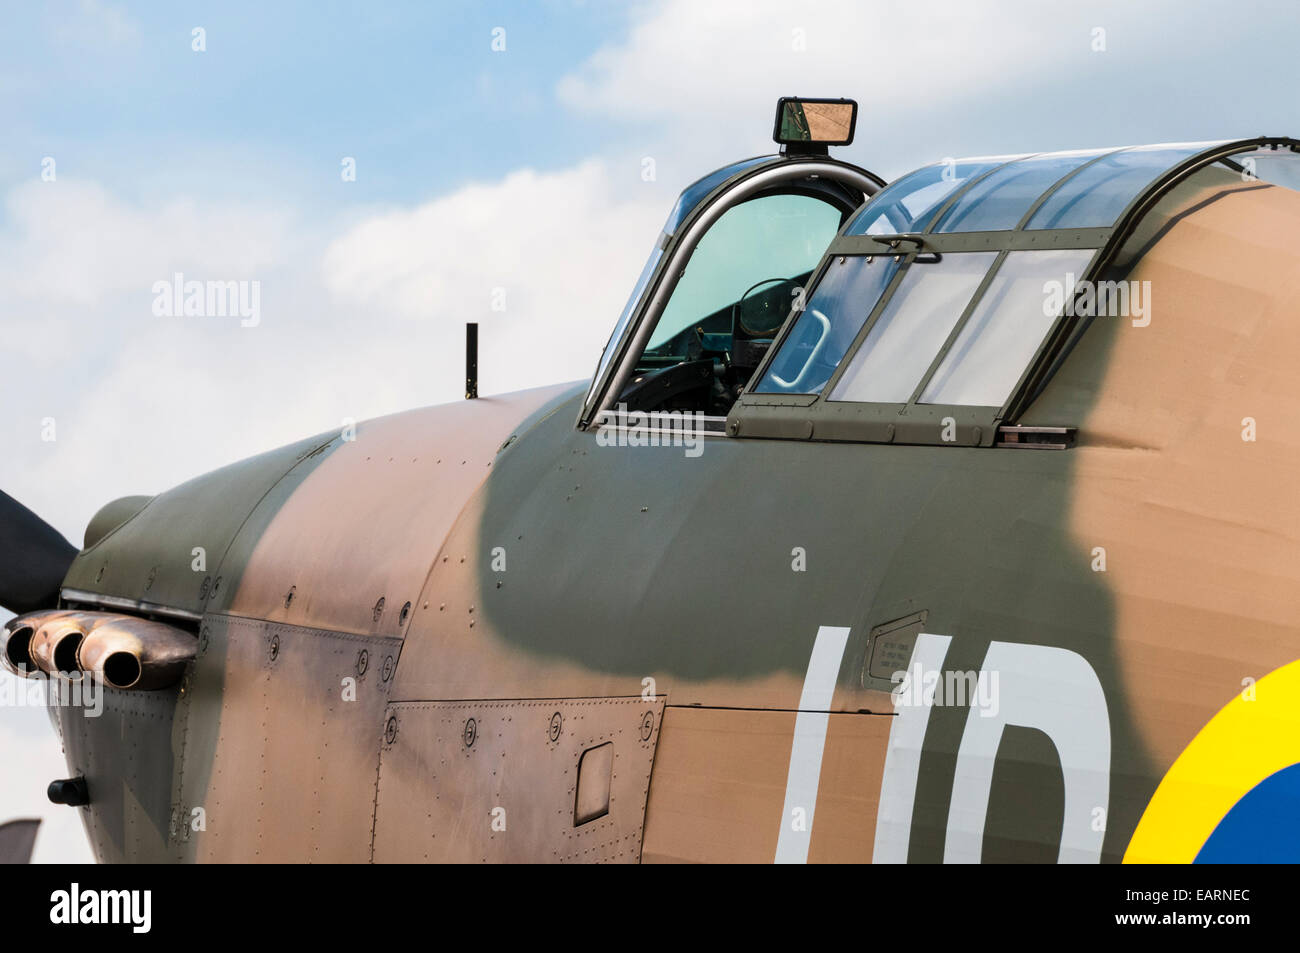 Close view of a World War 2 Hurricane fighter aircraft cockpit - Stock Image